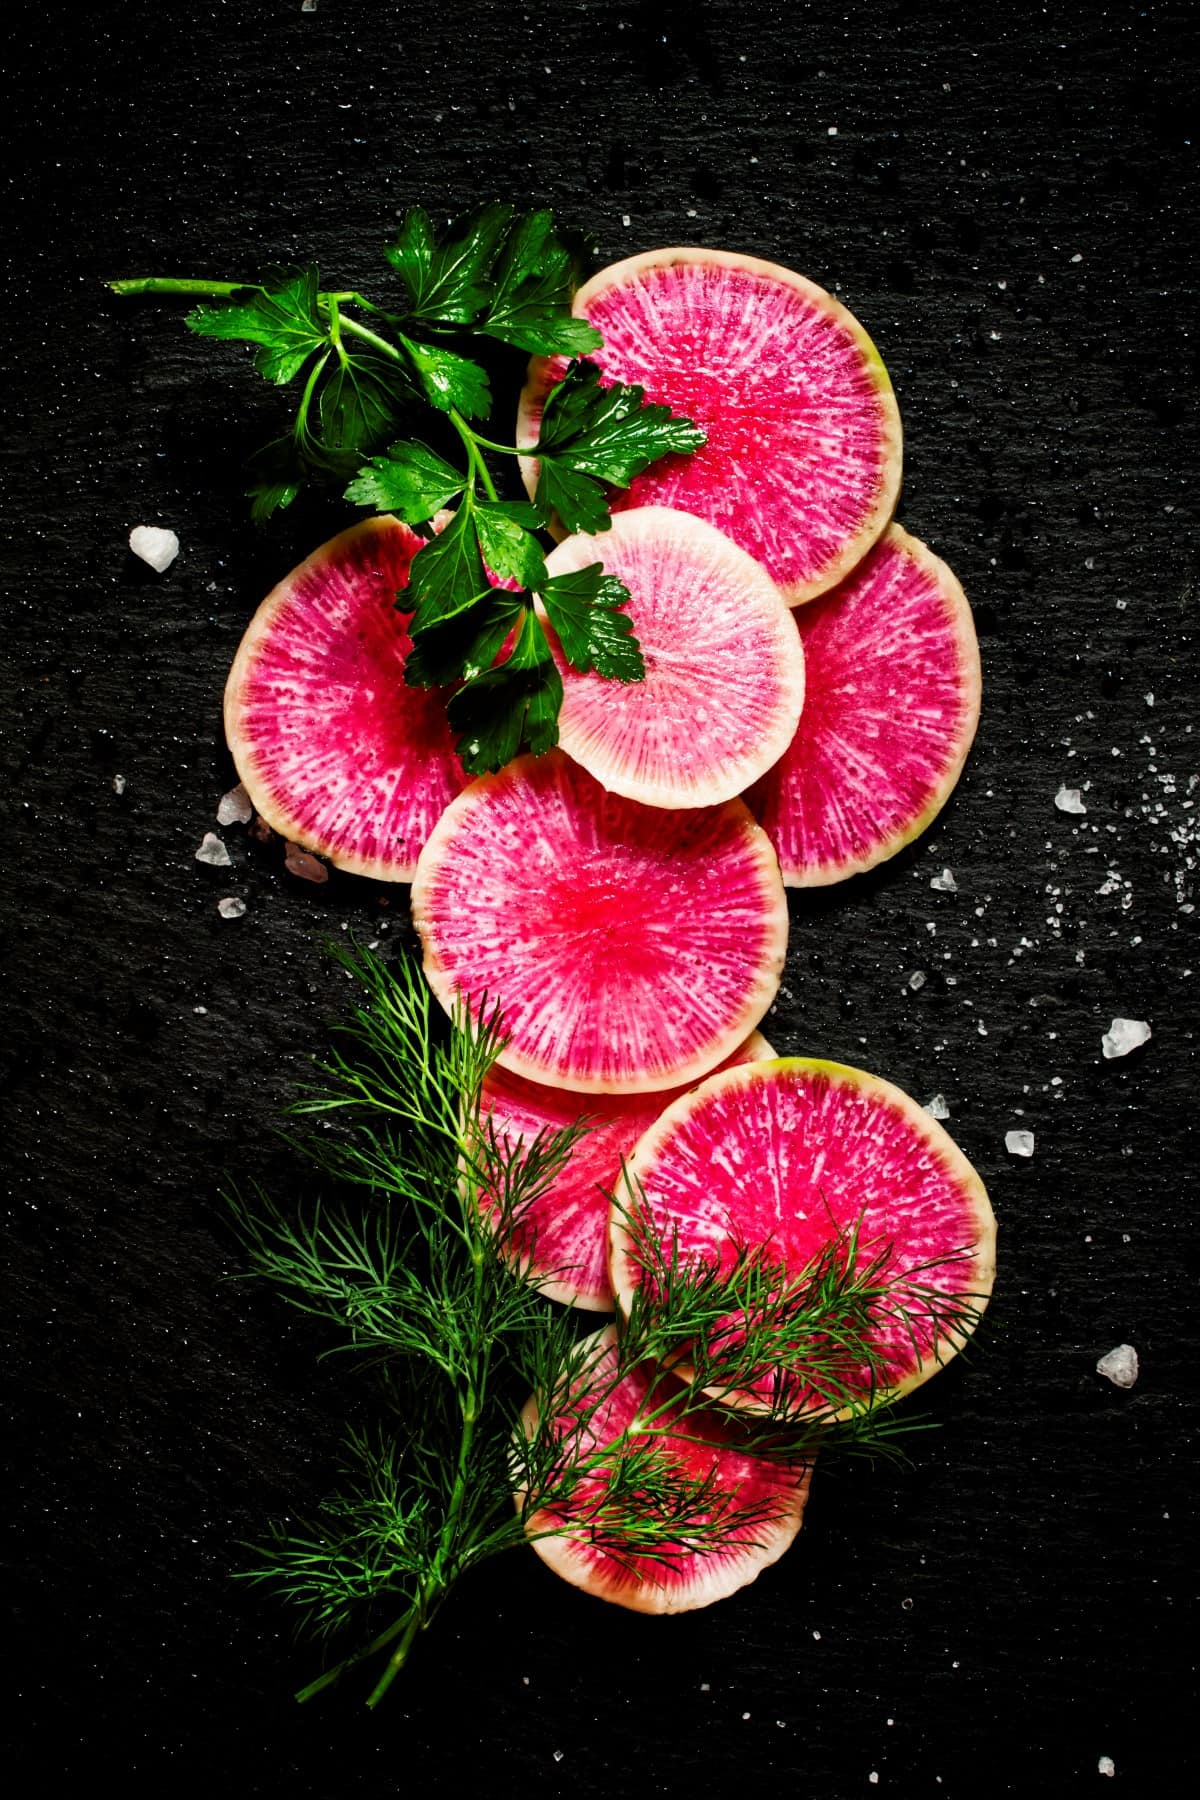 Food background: round slices of watermelon pink radish, dill, parsley, salt, black stone background, top view